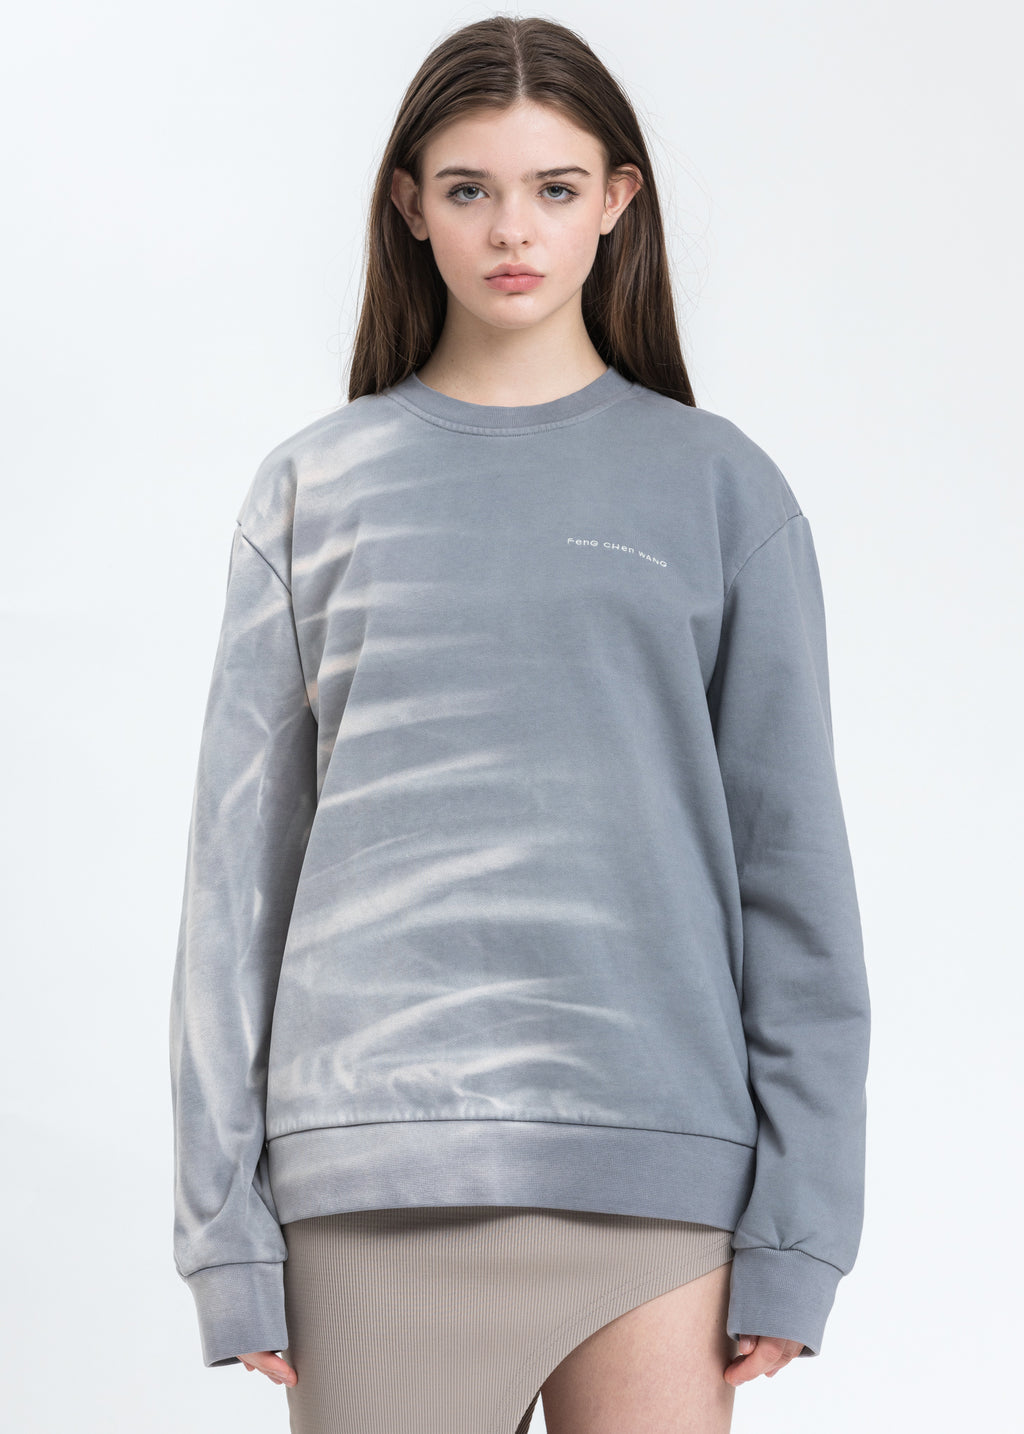 Grey With Gradient Tie Dye Sweatshirt